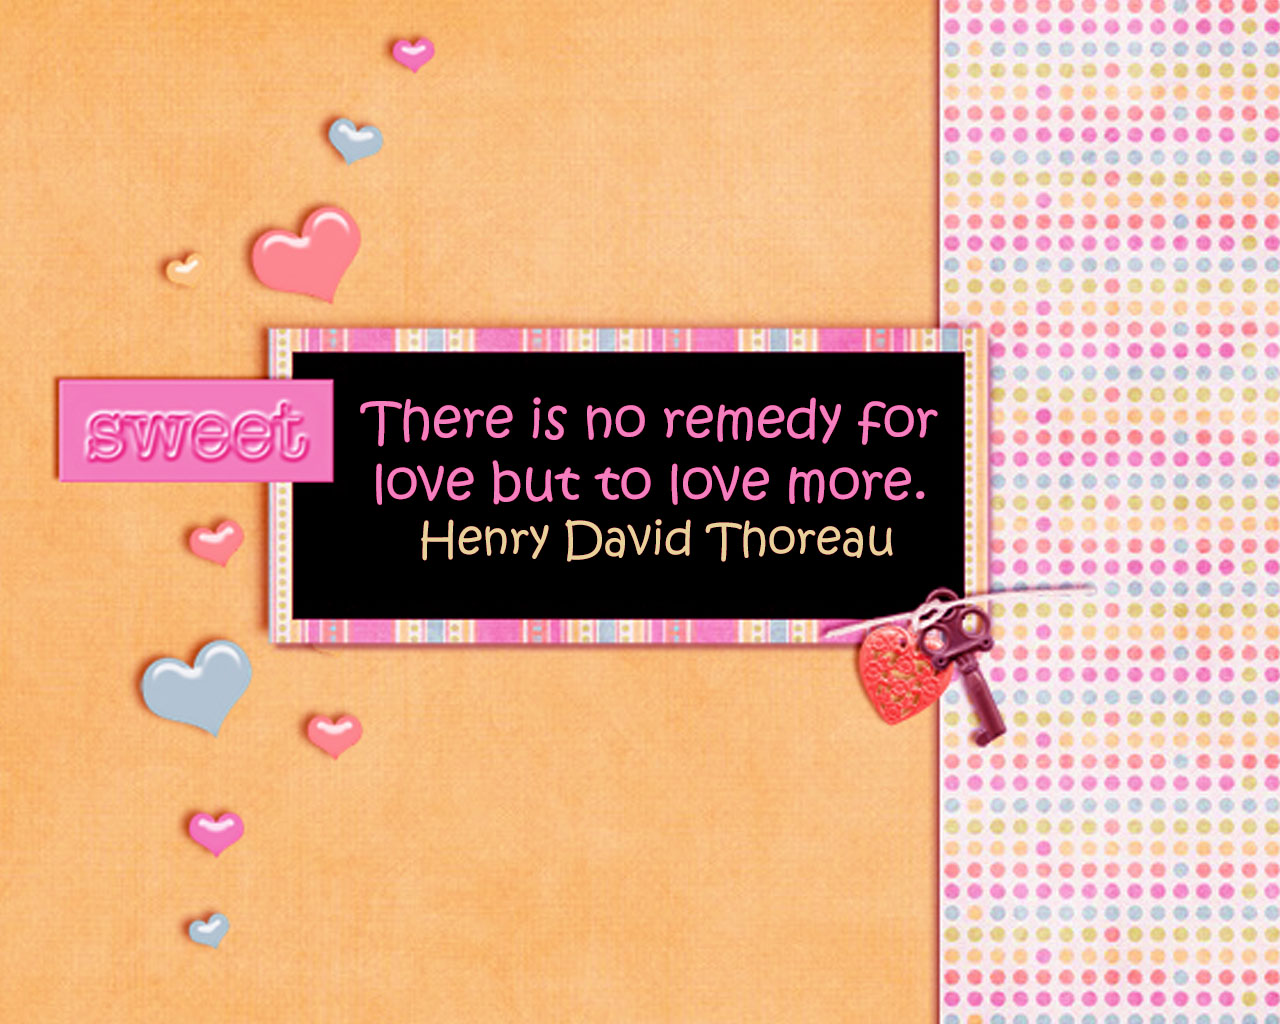 There is no remedy for love but to love more